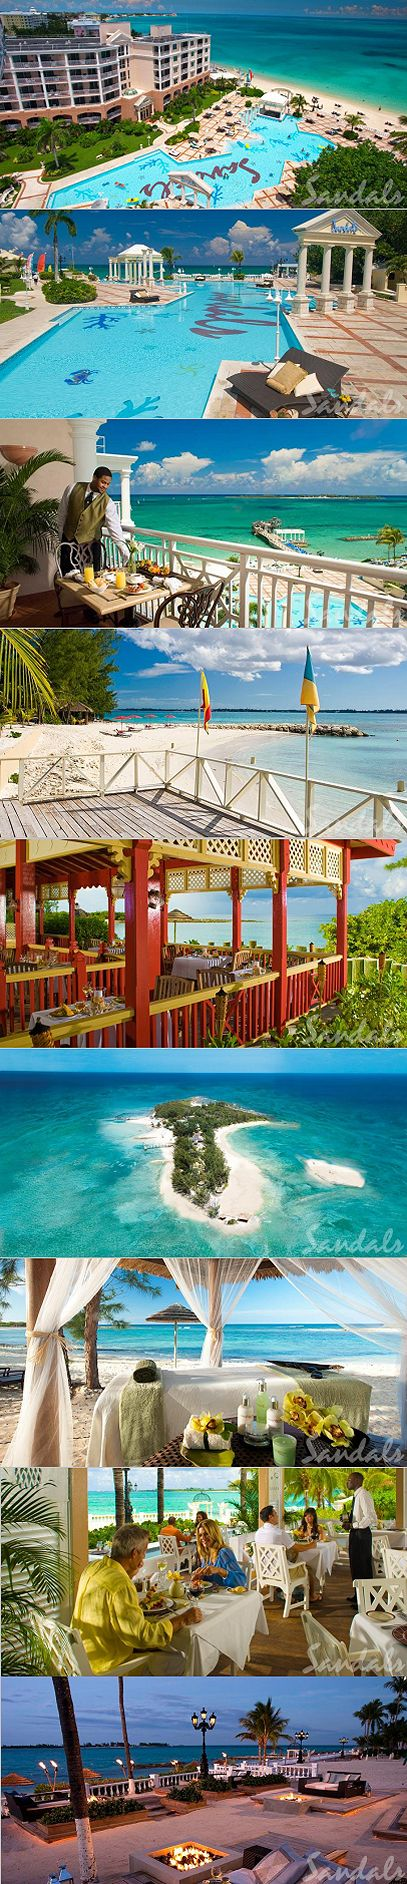 Best 25 royal bahamian ideas on pinterest sandals for Recommended vacations for couples